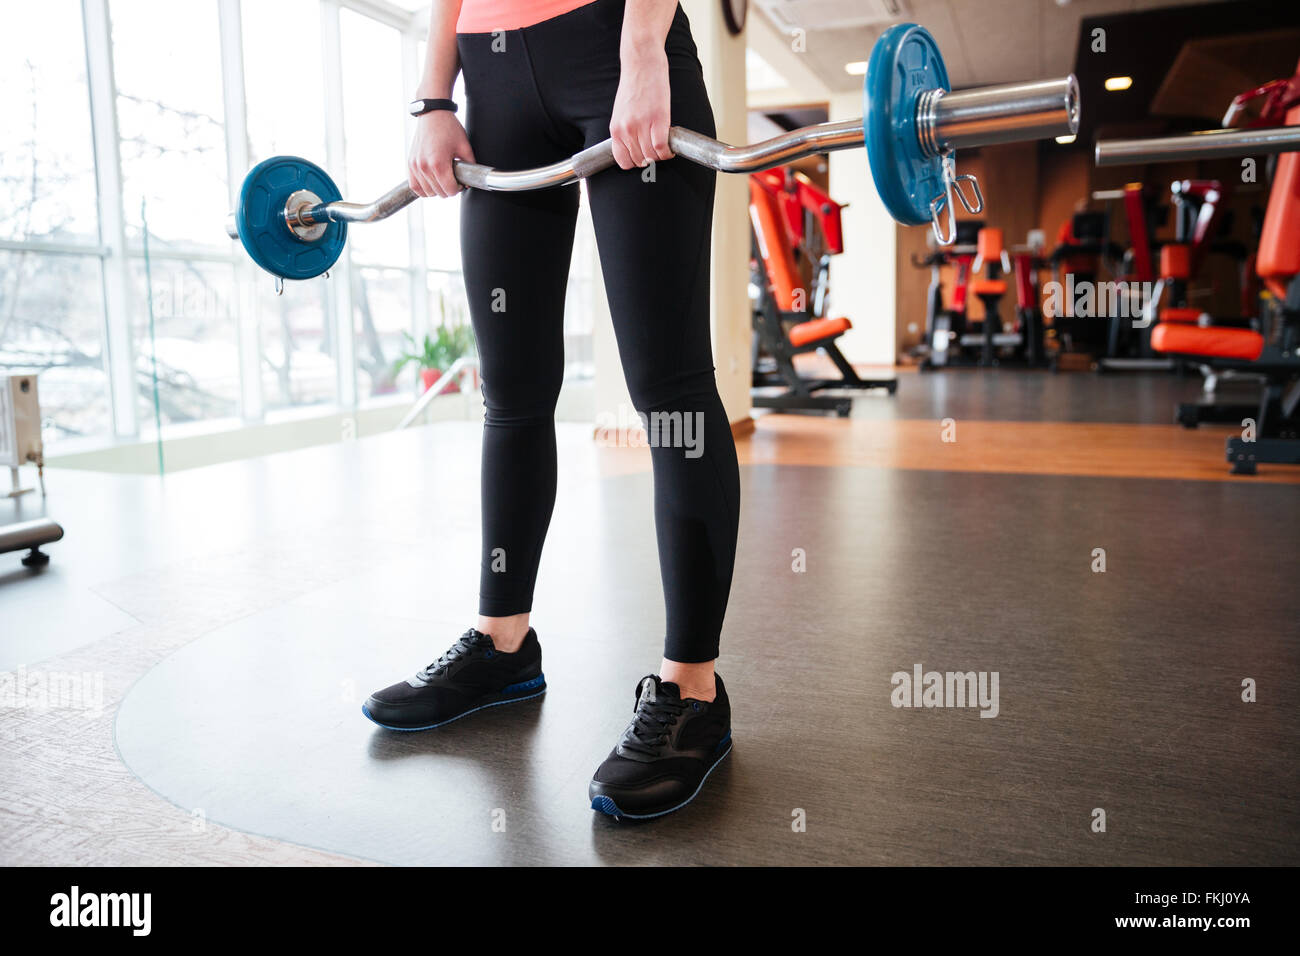 Closeup of legs of young woman athlete standing and exercising with barbell in gym - Stock Image